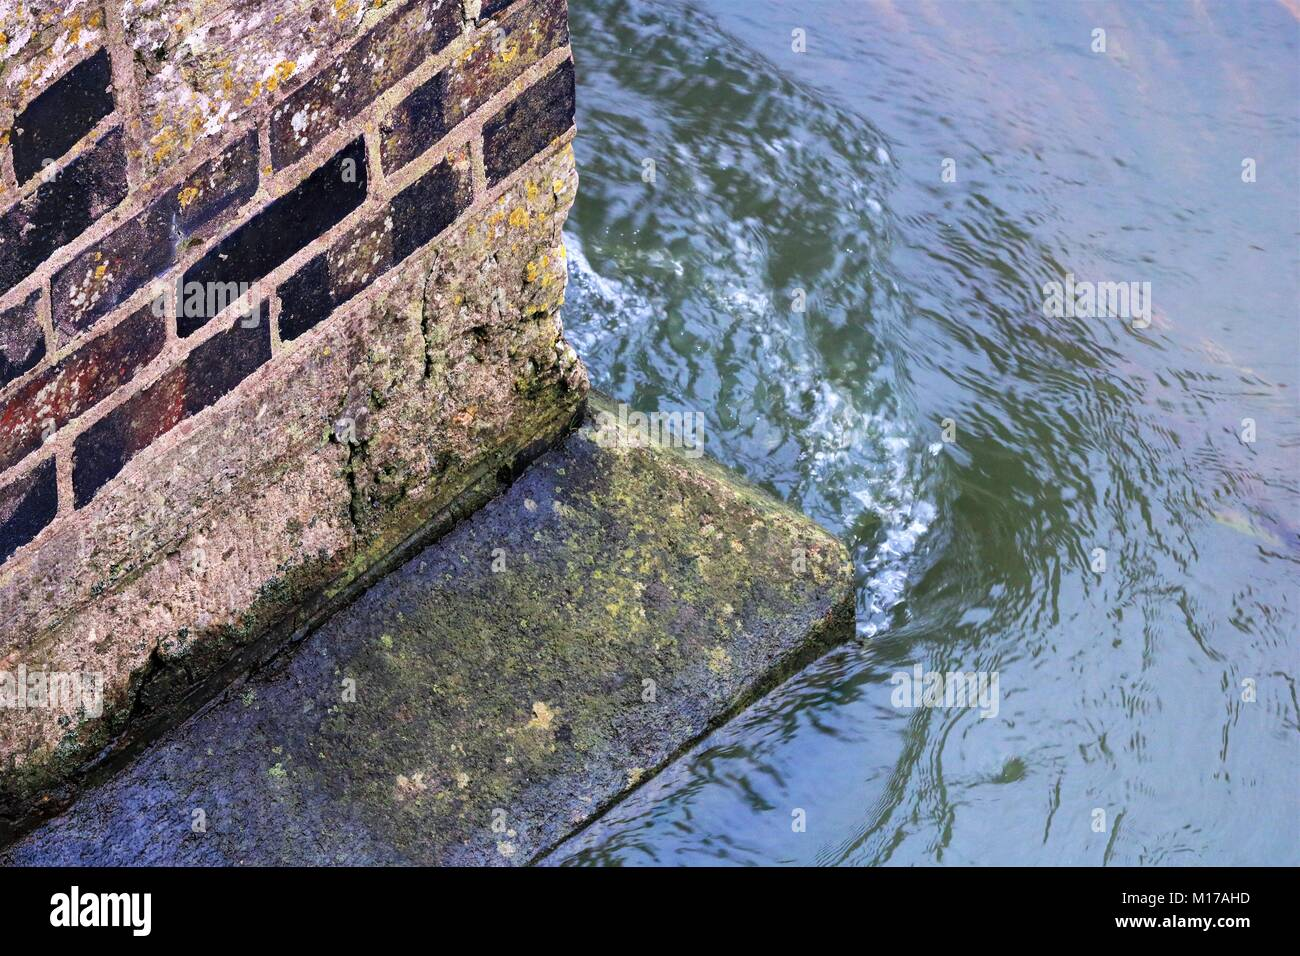 Angled view of flowing water hitting corner of bridge pillar resulting in ripples and bubbles in water - Stock Image